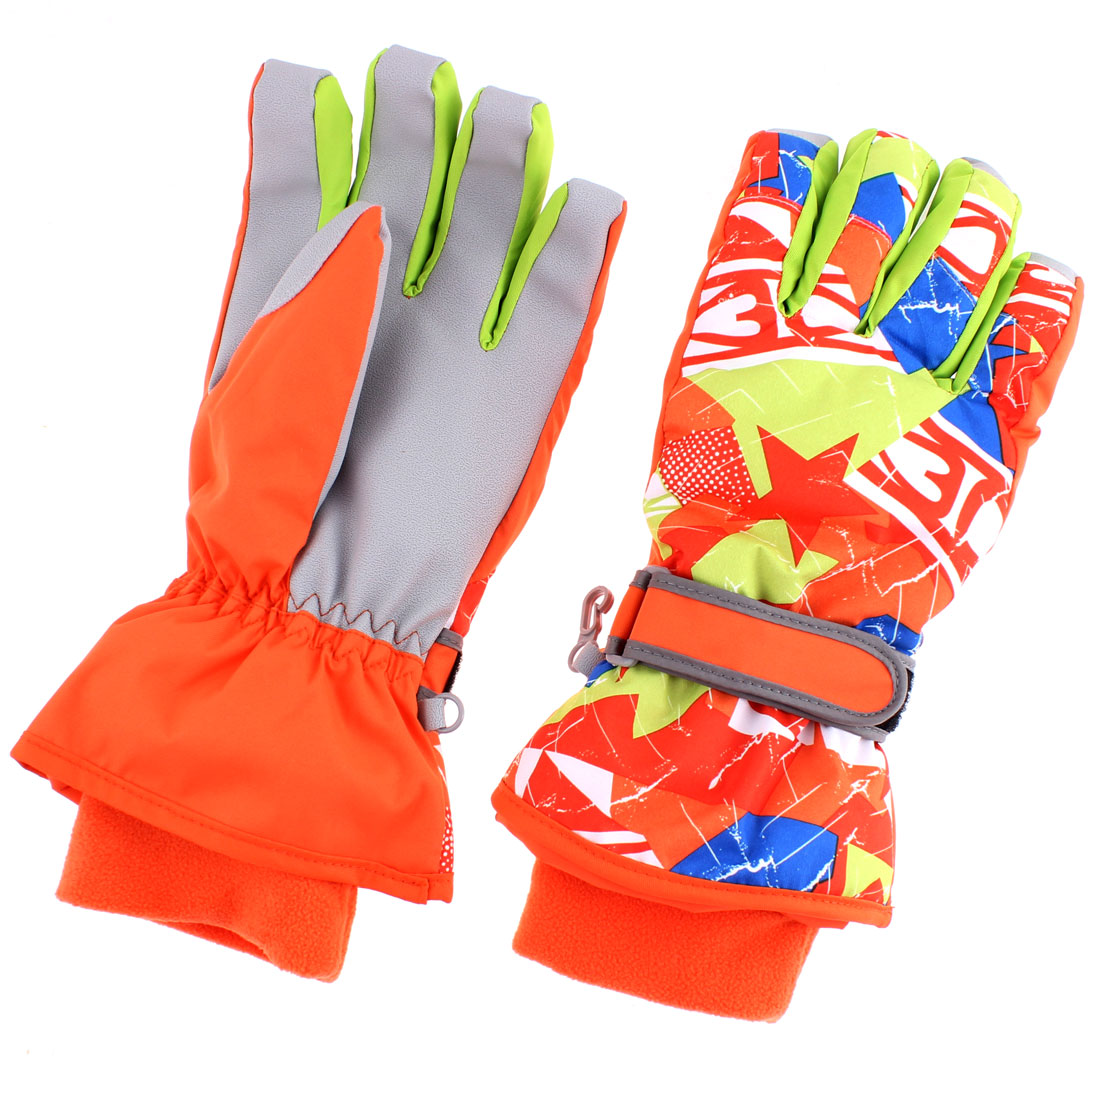 Kids Winter Outdoor Sports Ski Snowboarding Gloves Orange S Pair